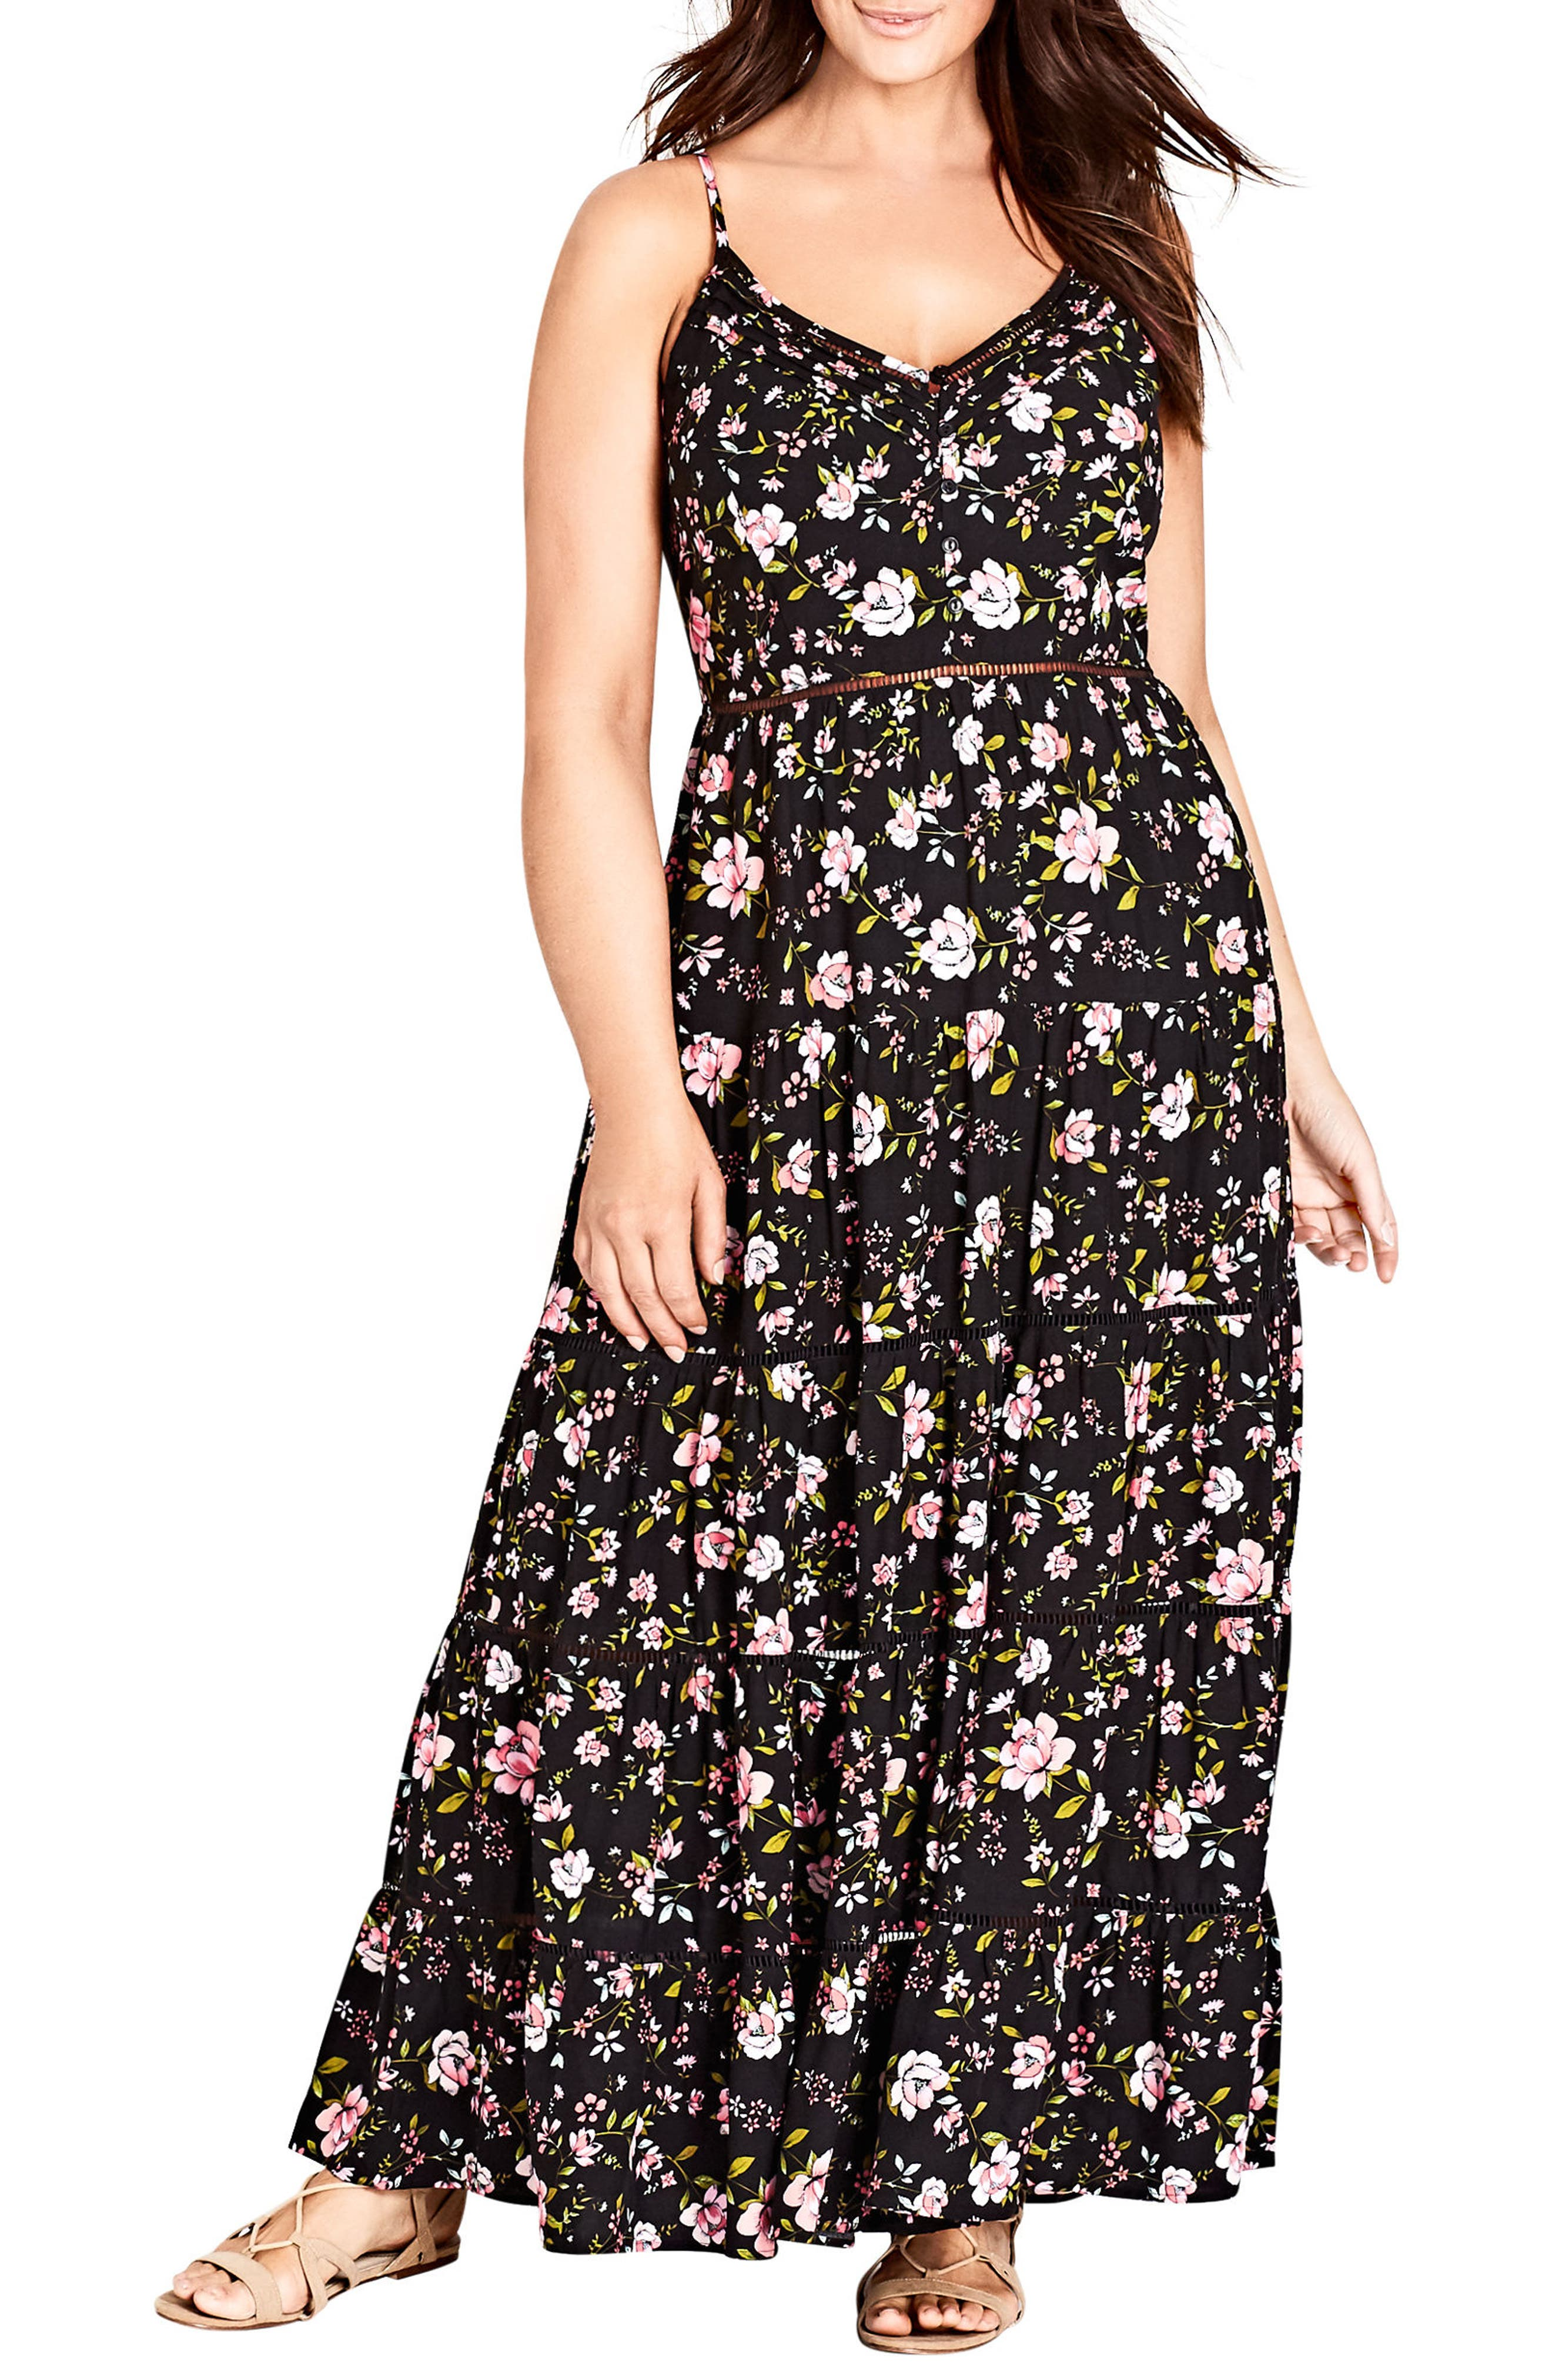 Festival Vibe Maxi Dress,                         Main,                         color, Black Print